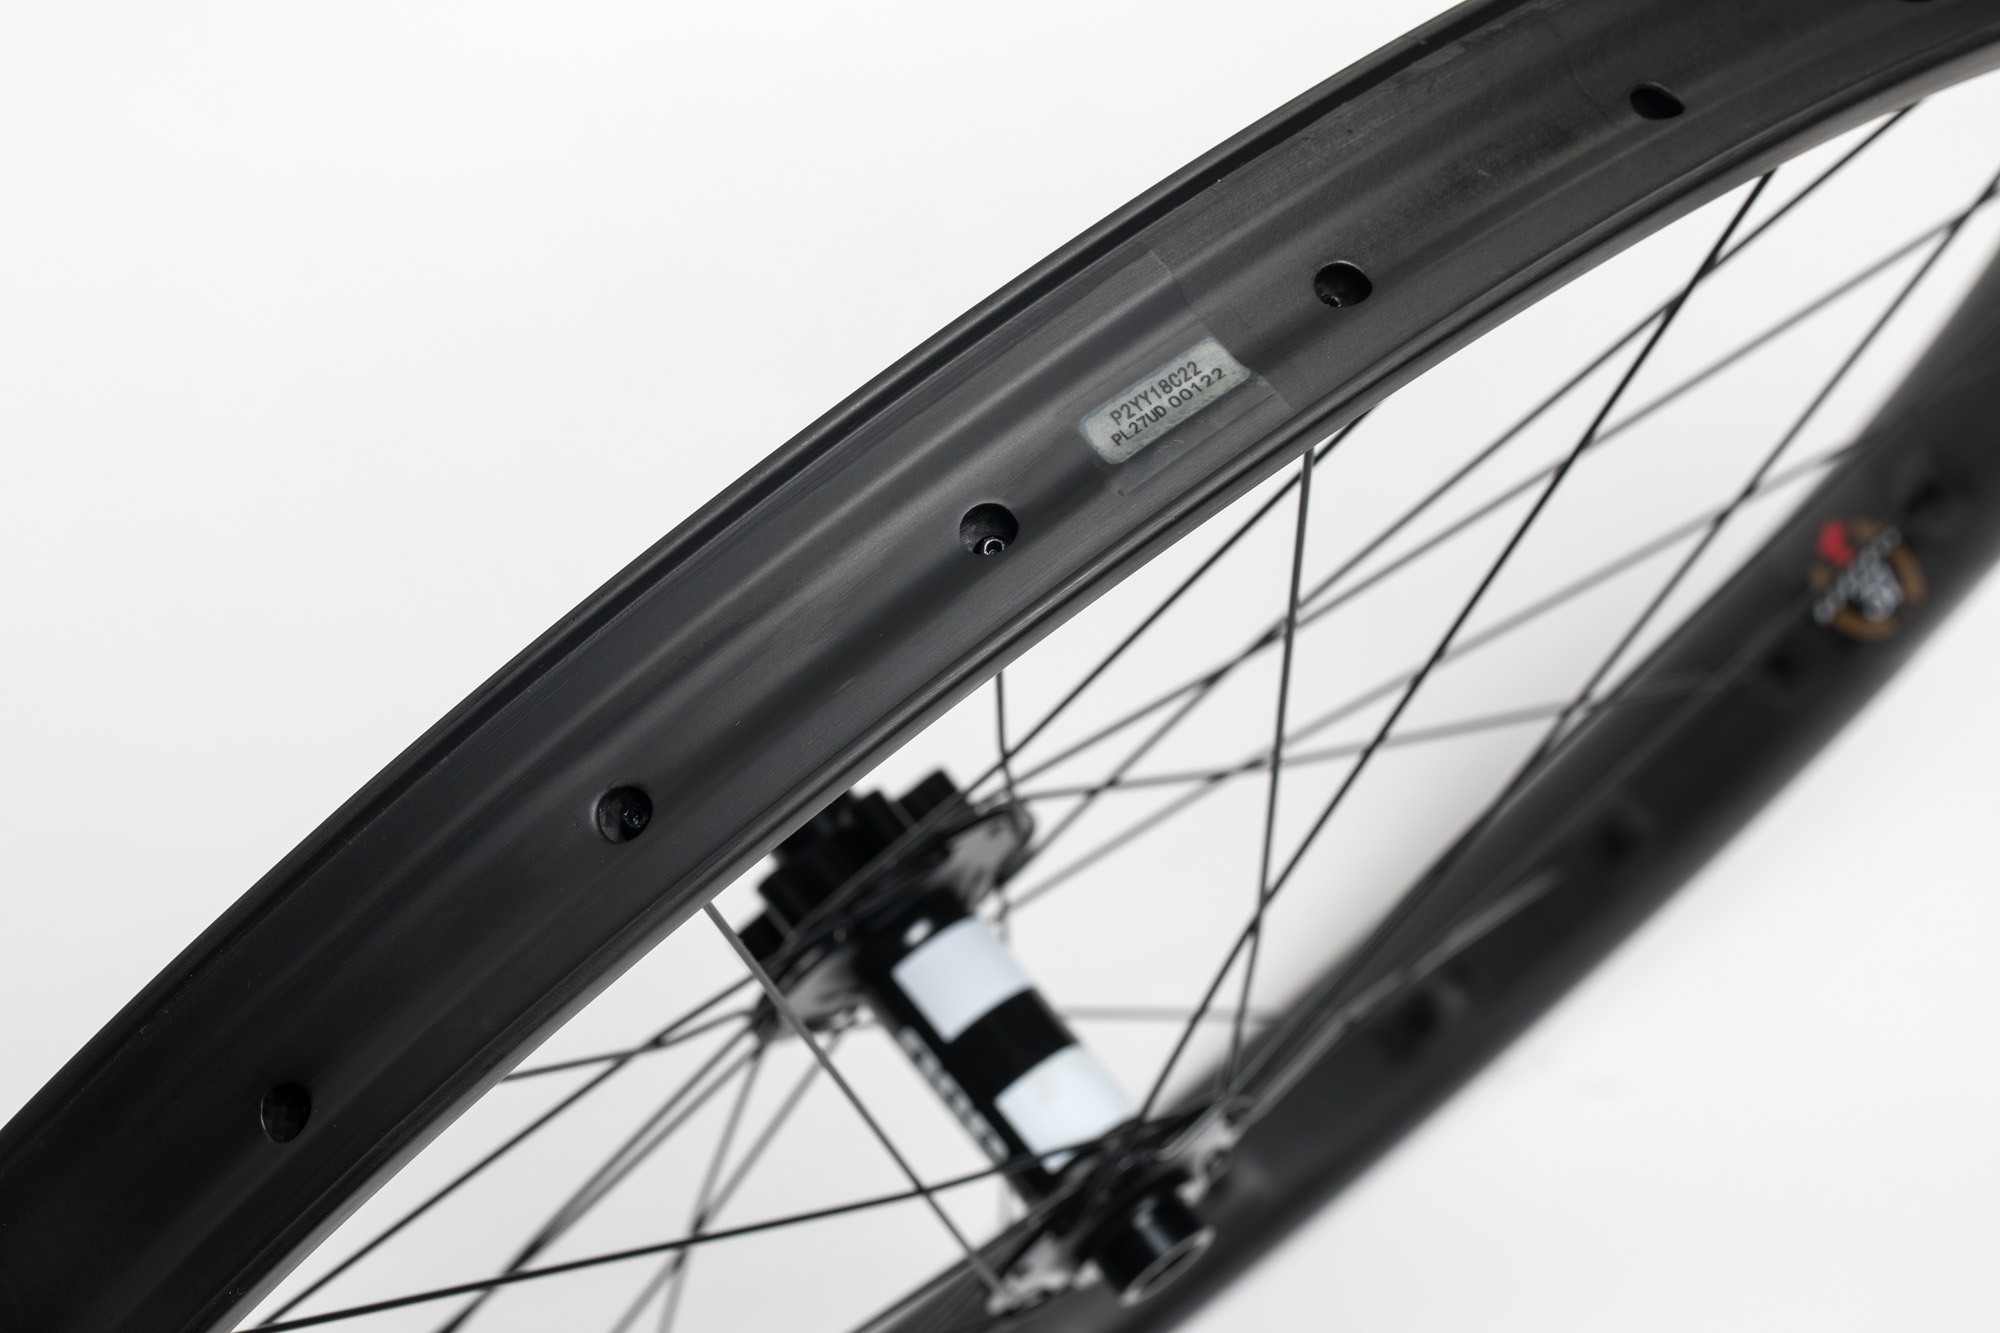 How To Find Your Serial Number | Santa Cruz Bicycles